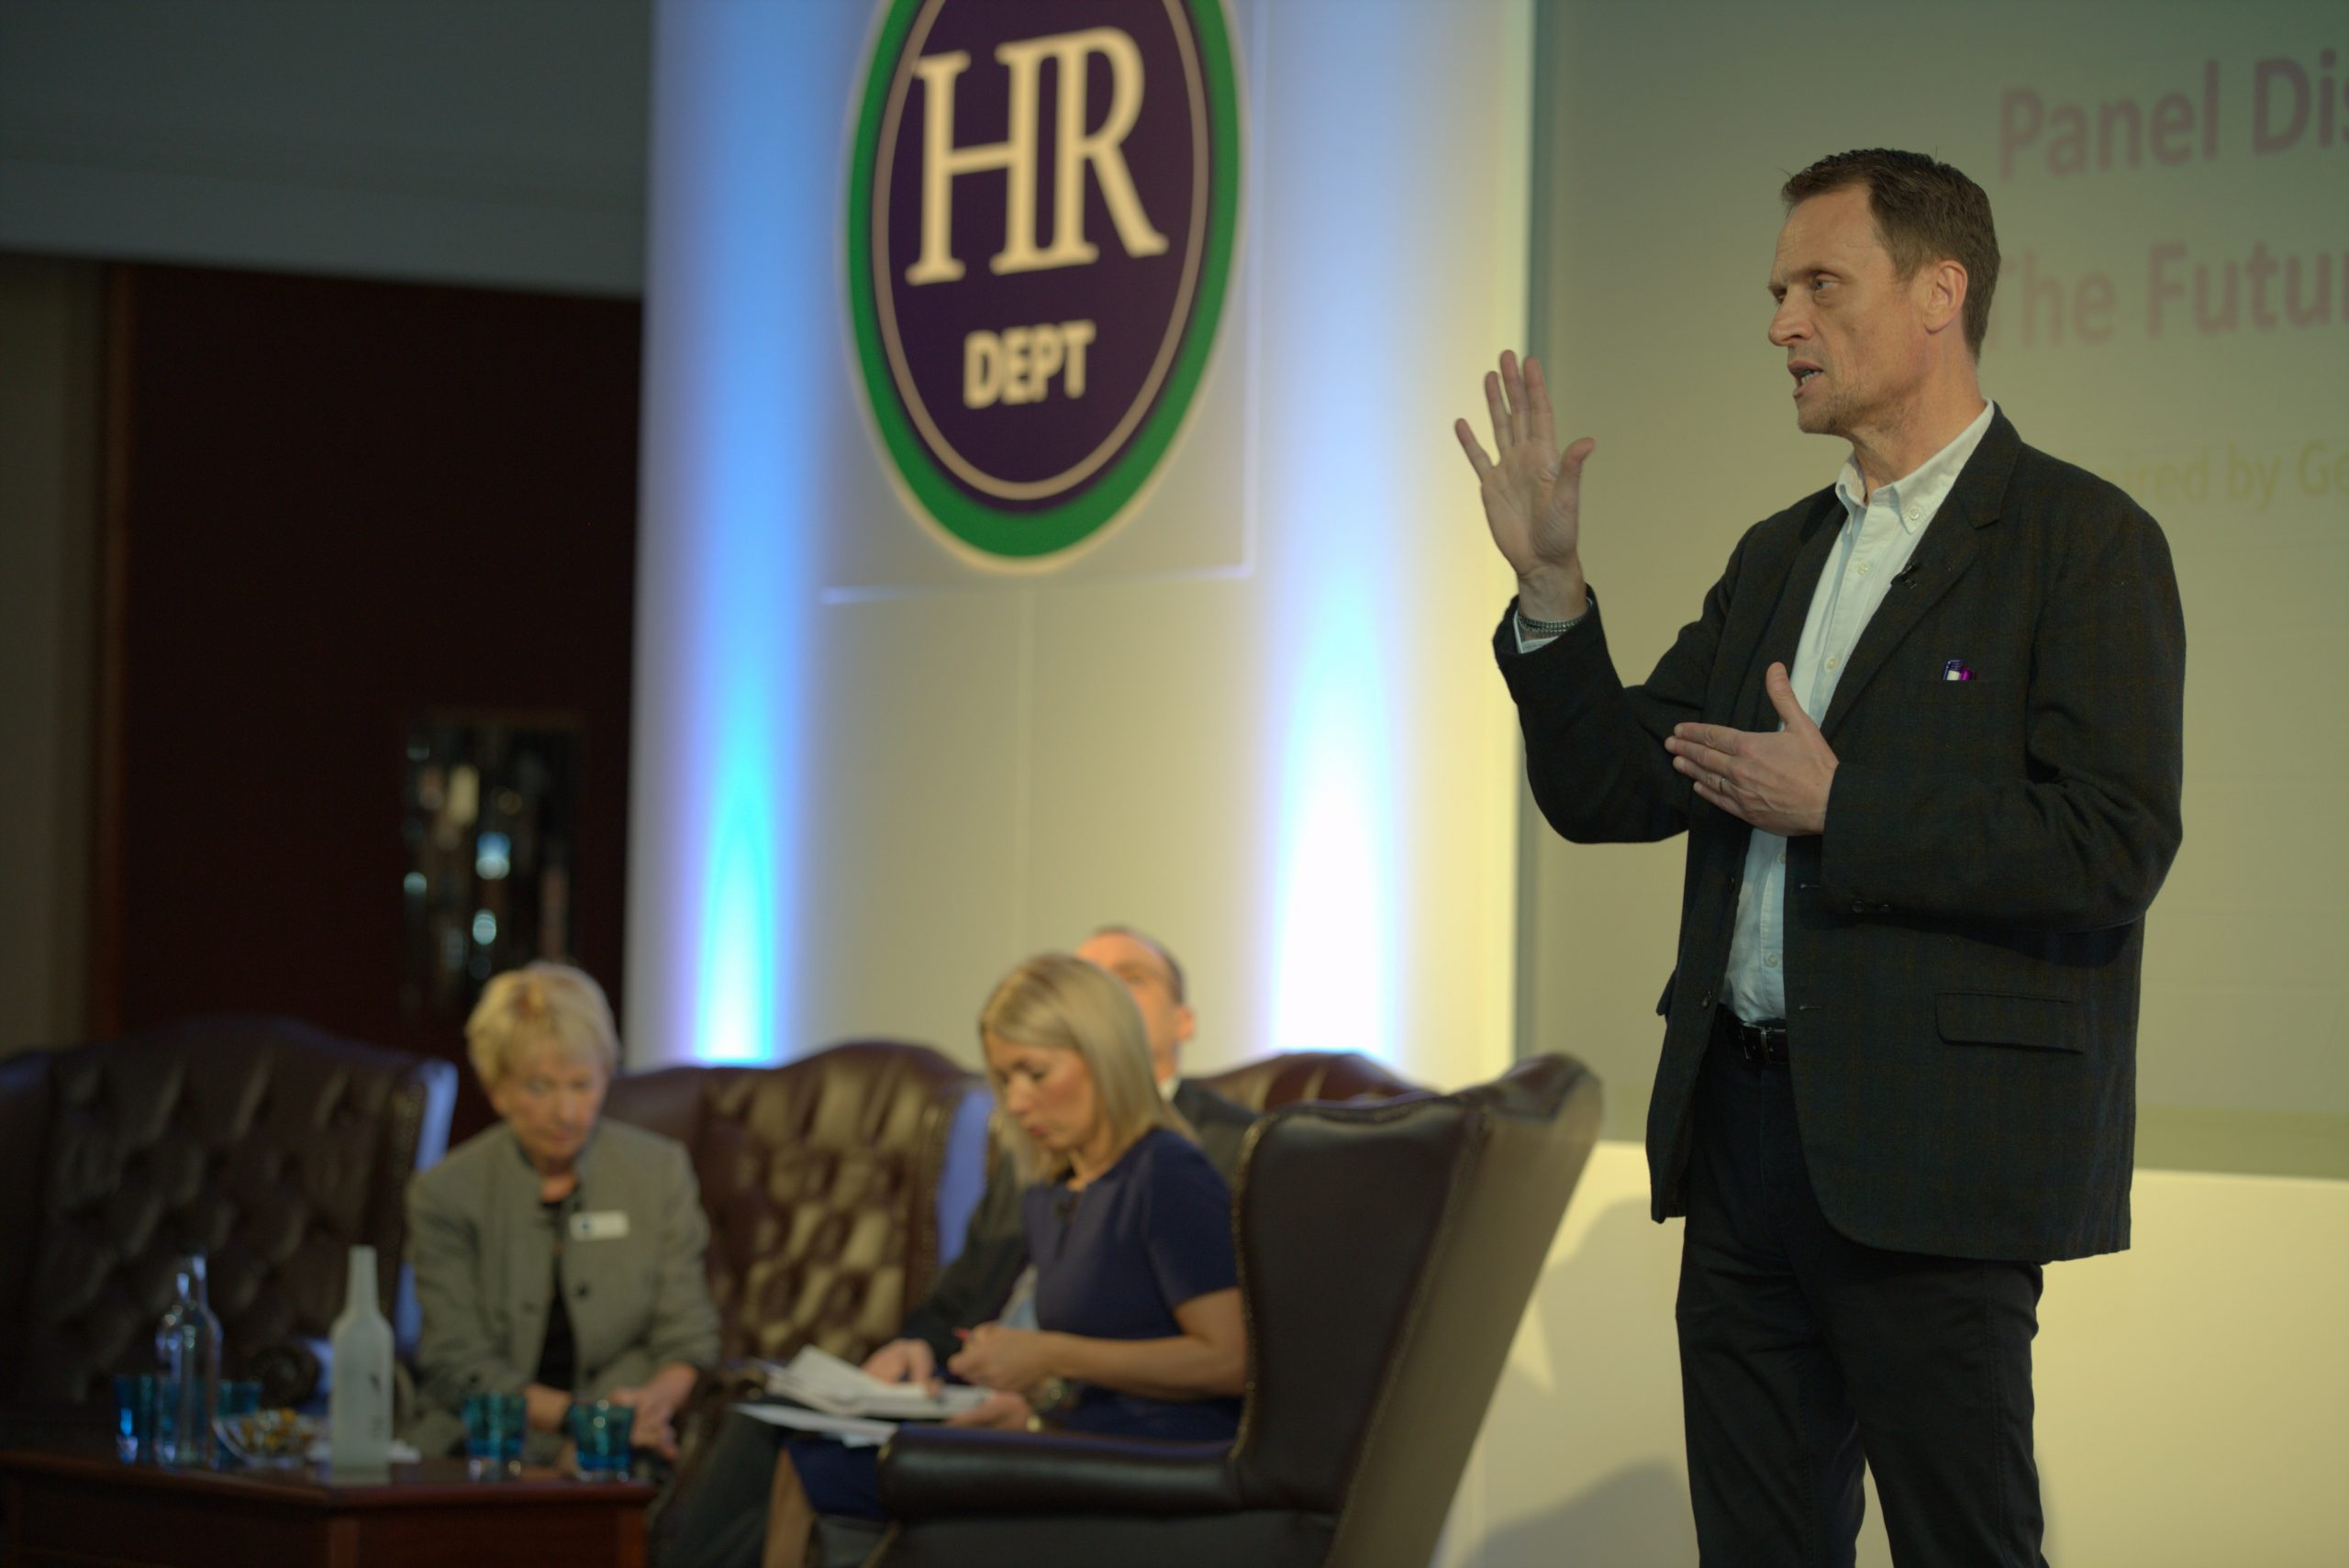 supporting UK SMEs with The HR Dept